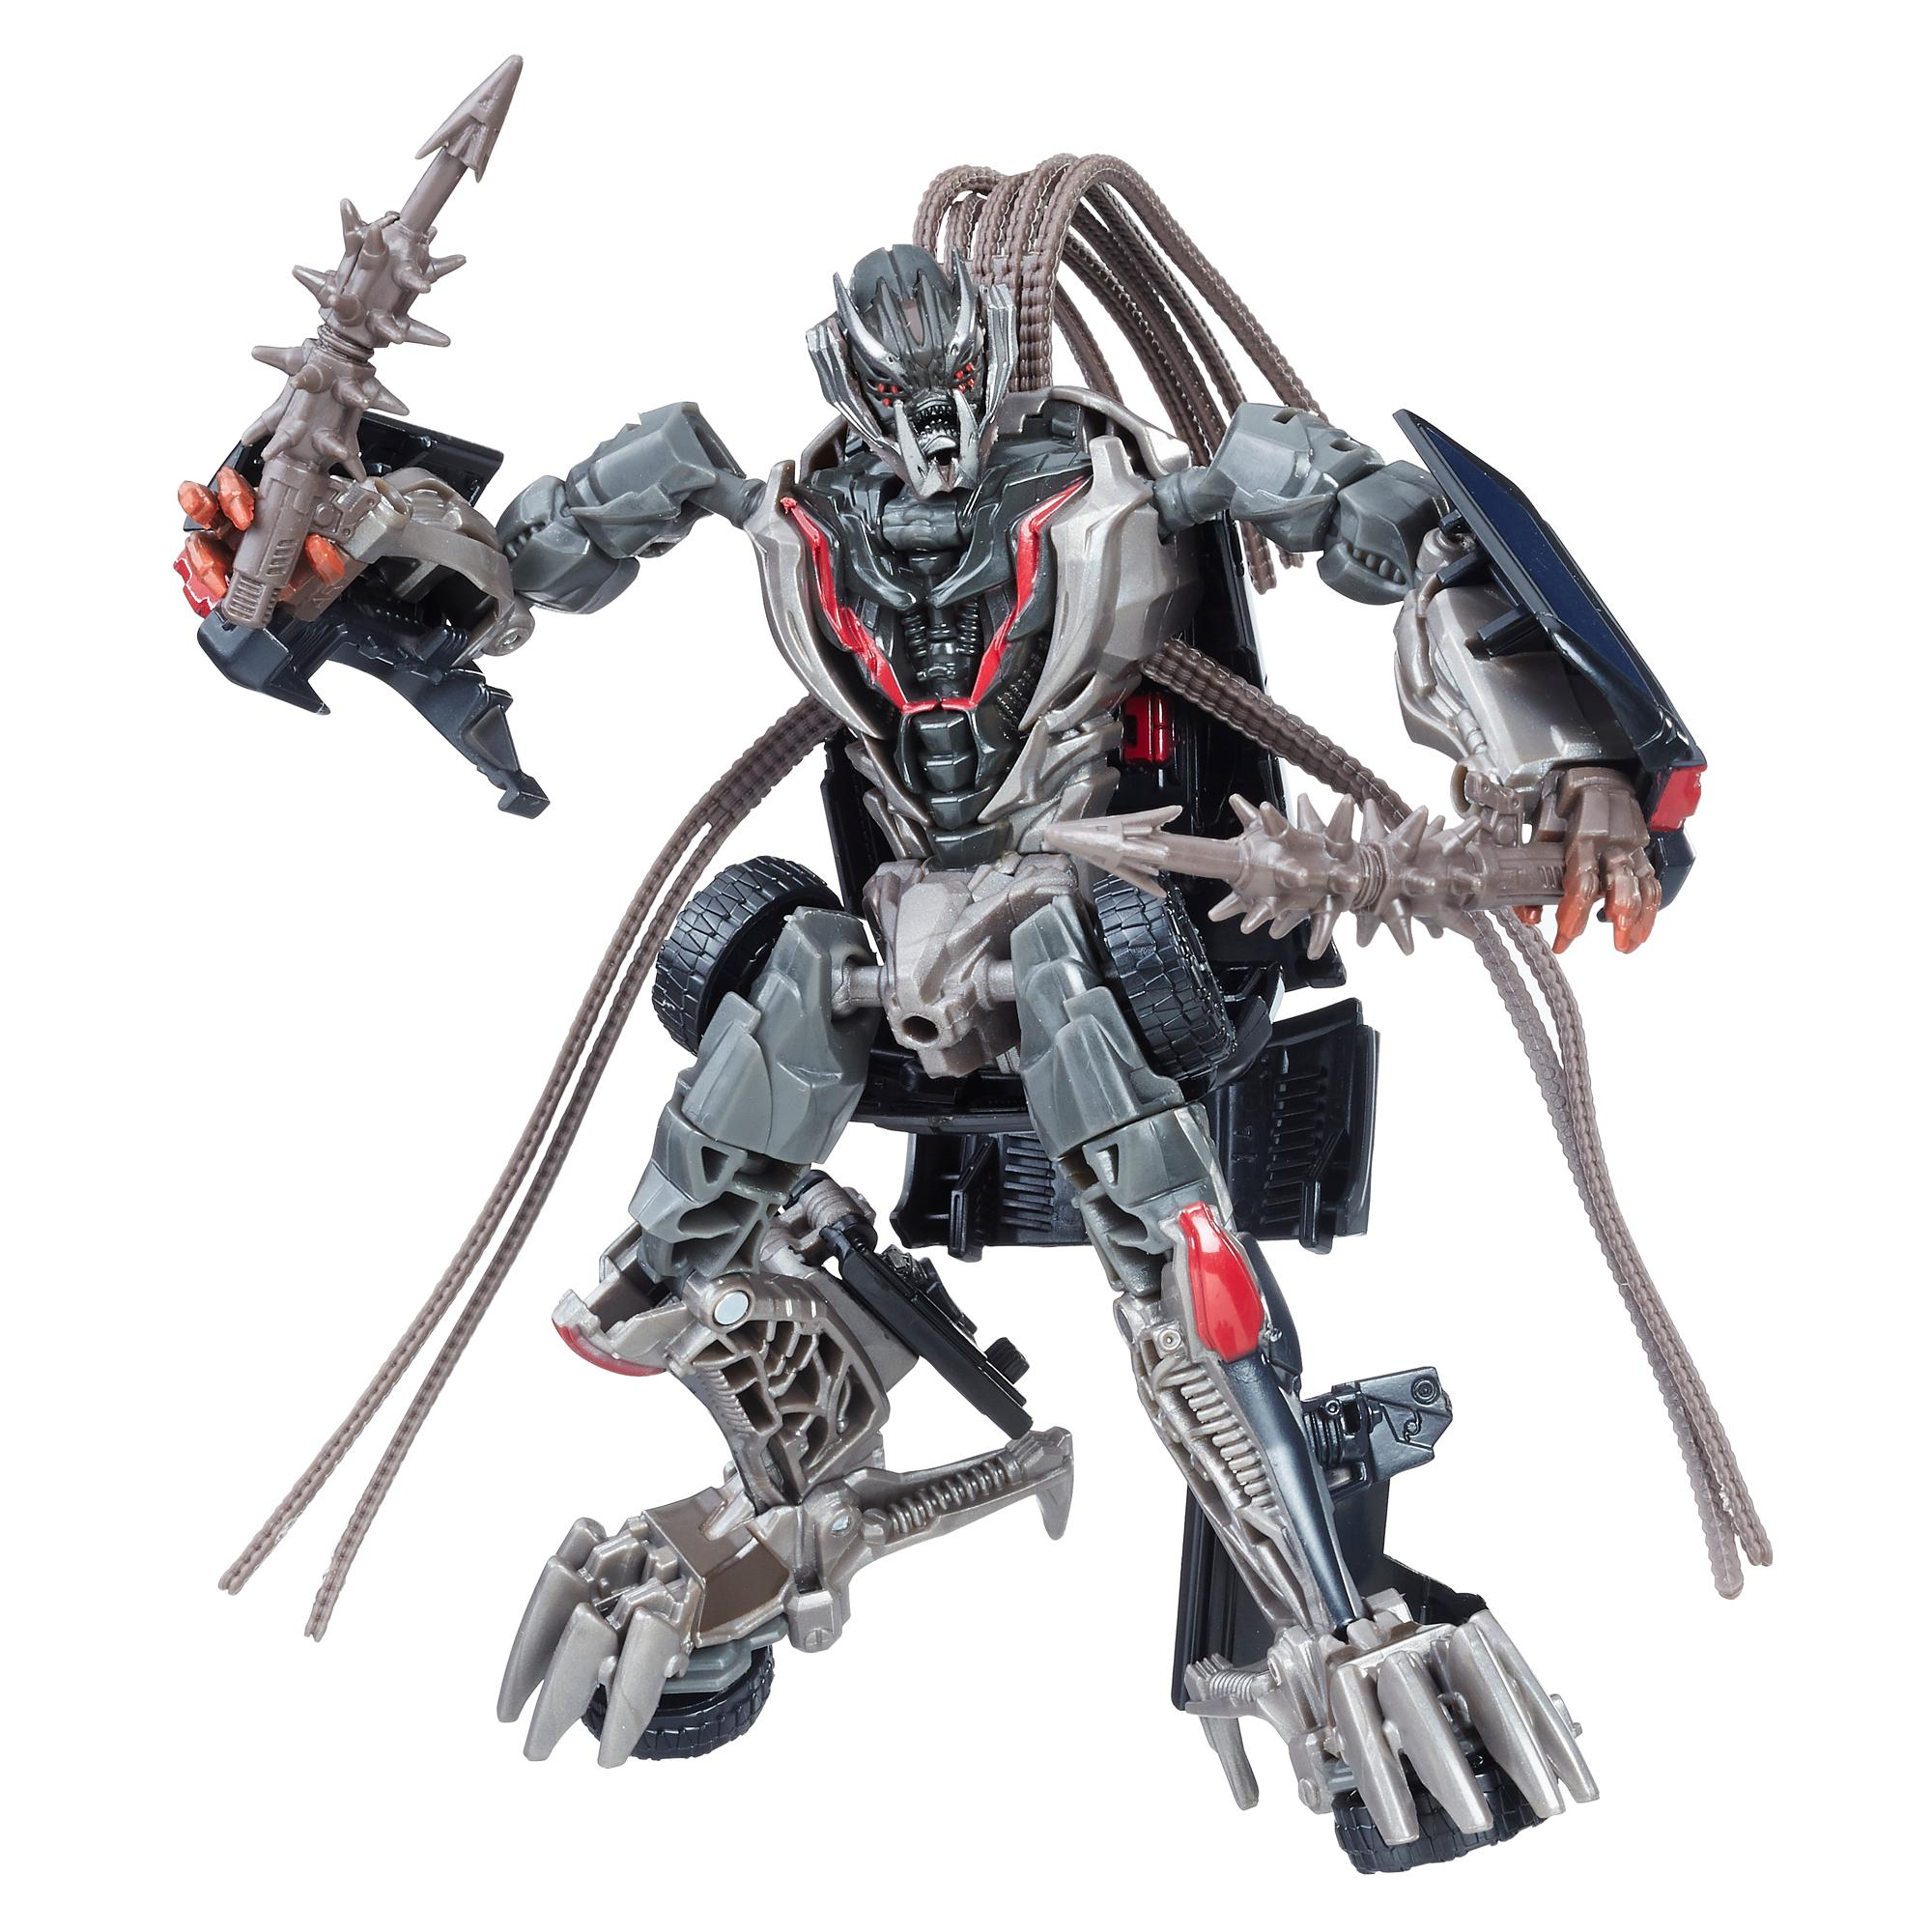 Transformers Studio Series 03 Deluxe Class Movie 3 Crowbar